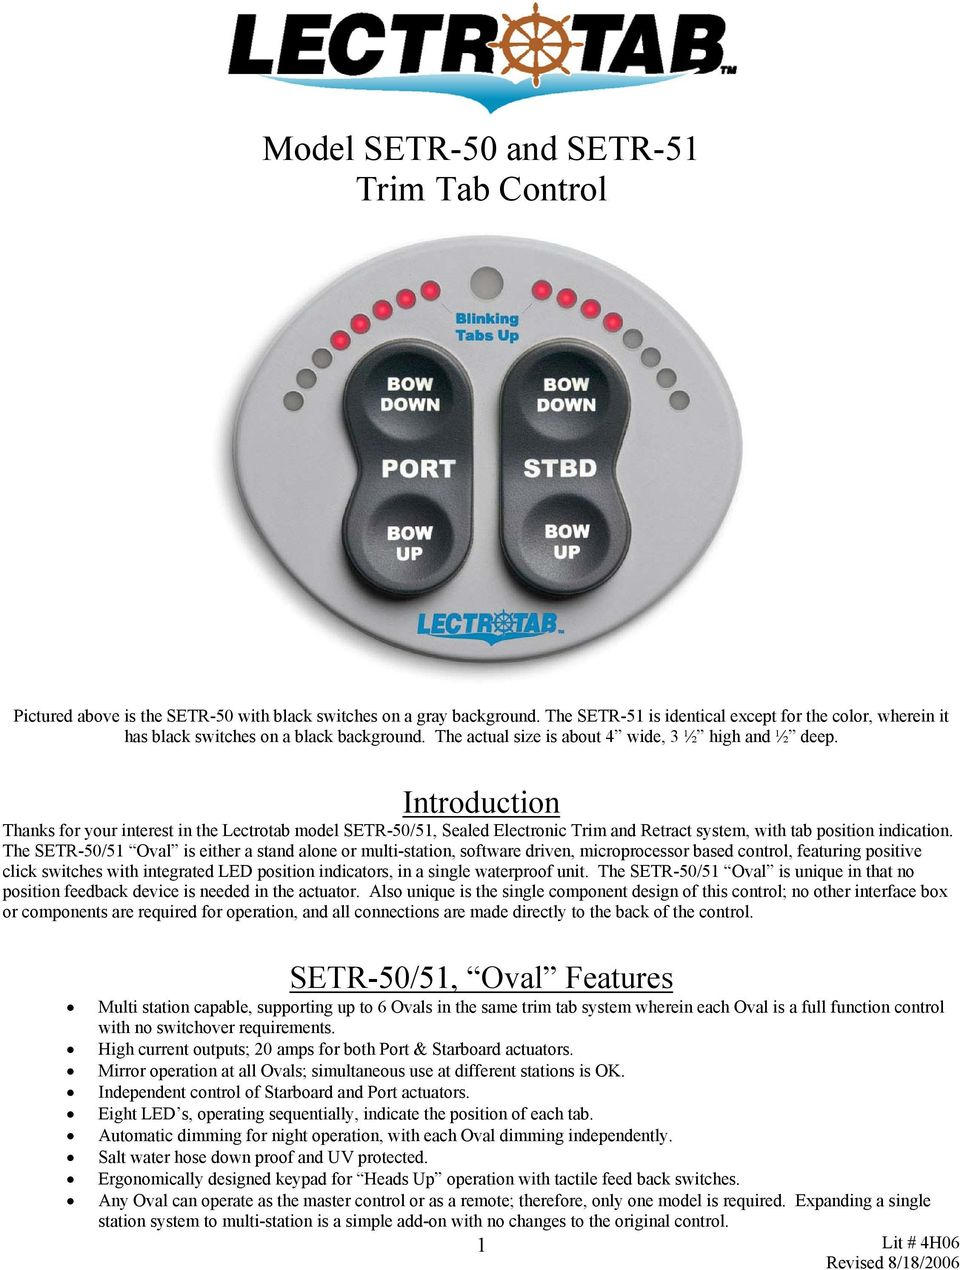 Model SETR-50 and SETR-51 Trim Tab Control - PDF